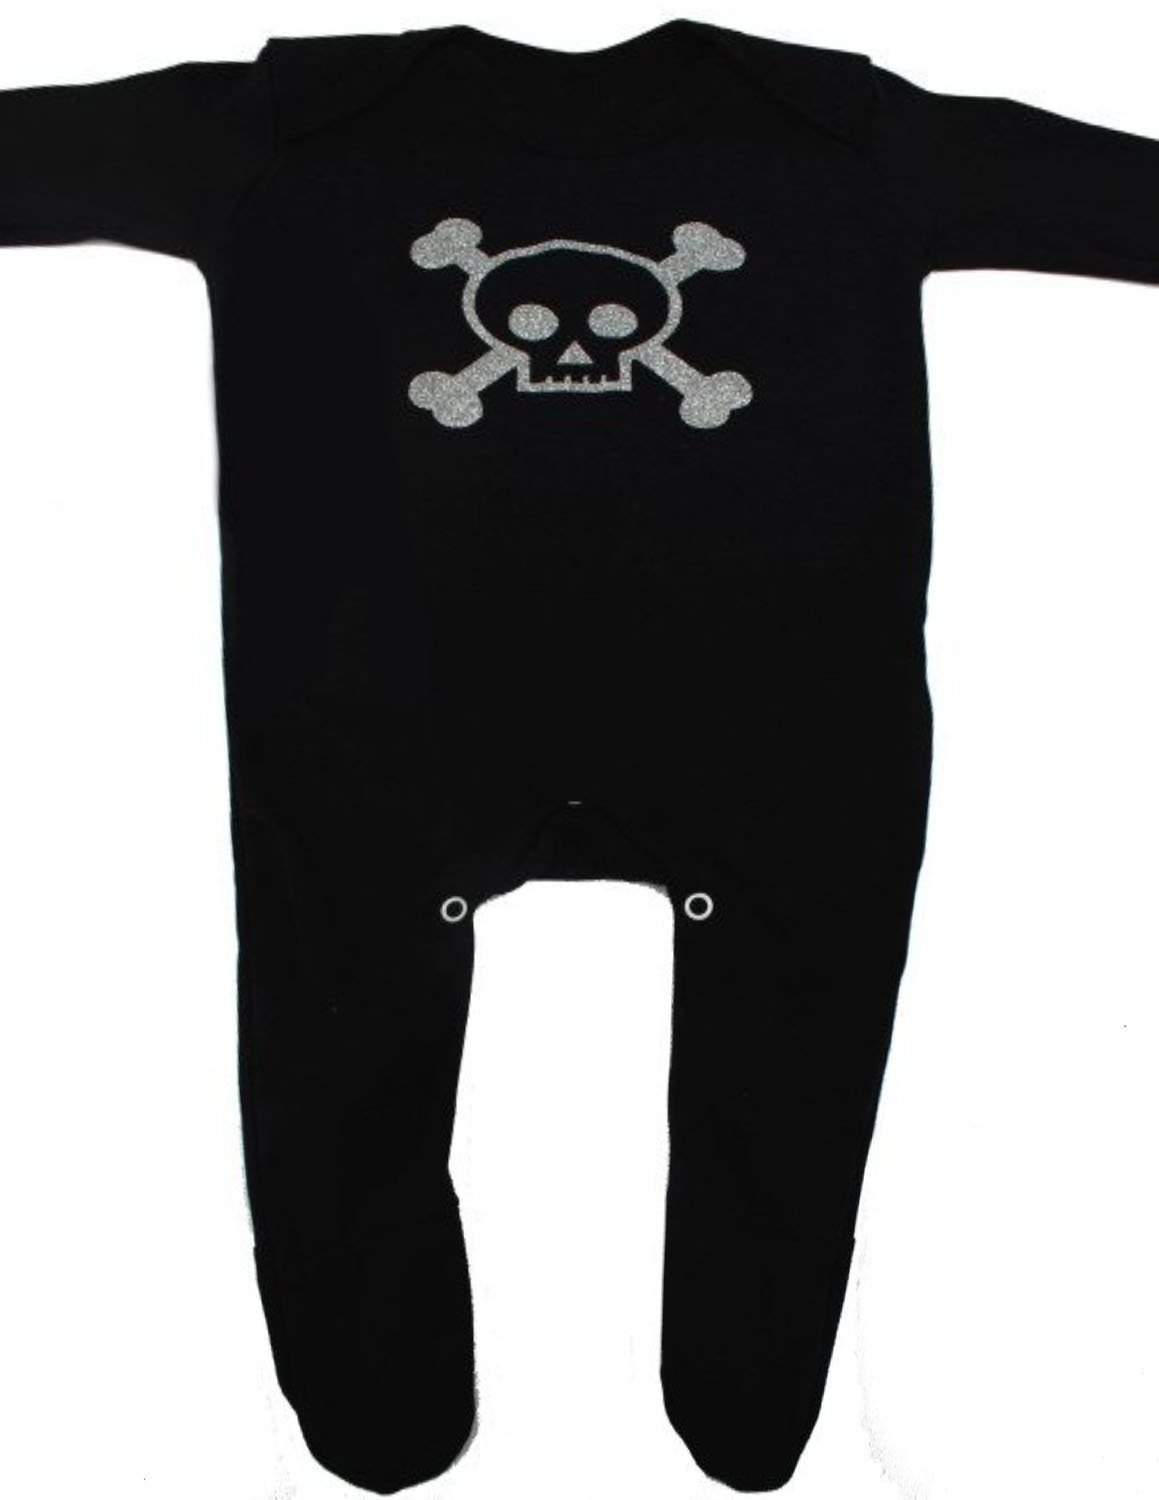 Skull Baby Sleepsuit for Boys or Girls | New Cool Skull & Crossbones Pirate Romper Outfit - Ideal Baby Shower, Goth Baby Clothes, or 1st Halloween Gift | BABY MOO'S UK (3-6 months) BabyMoos.com GL-S&B/SS